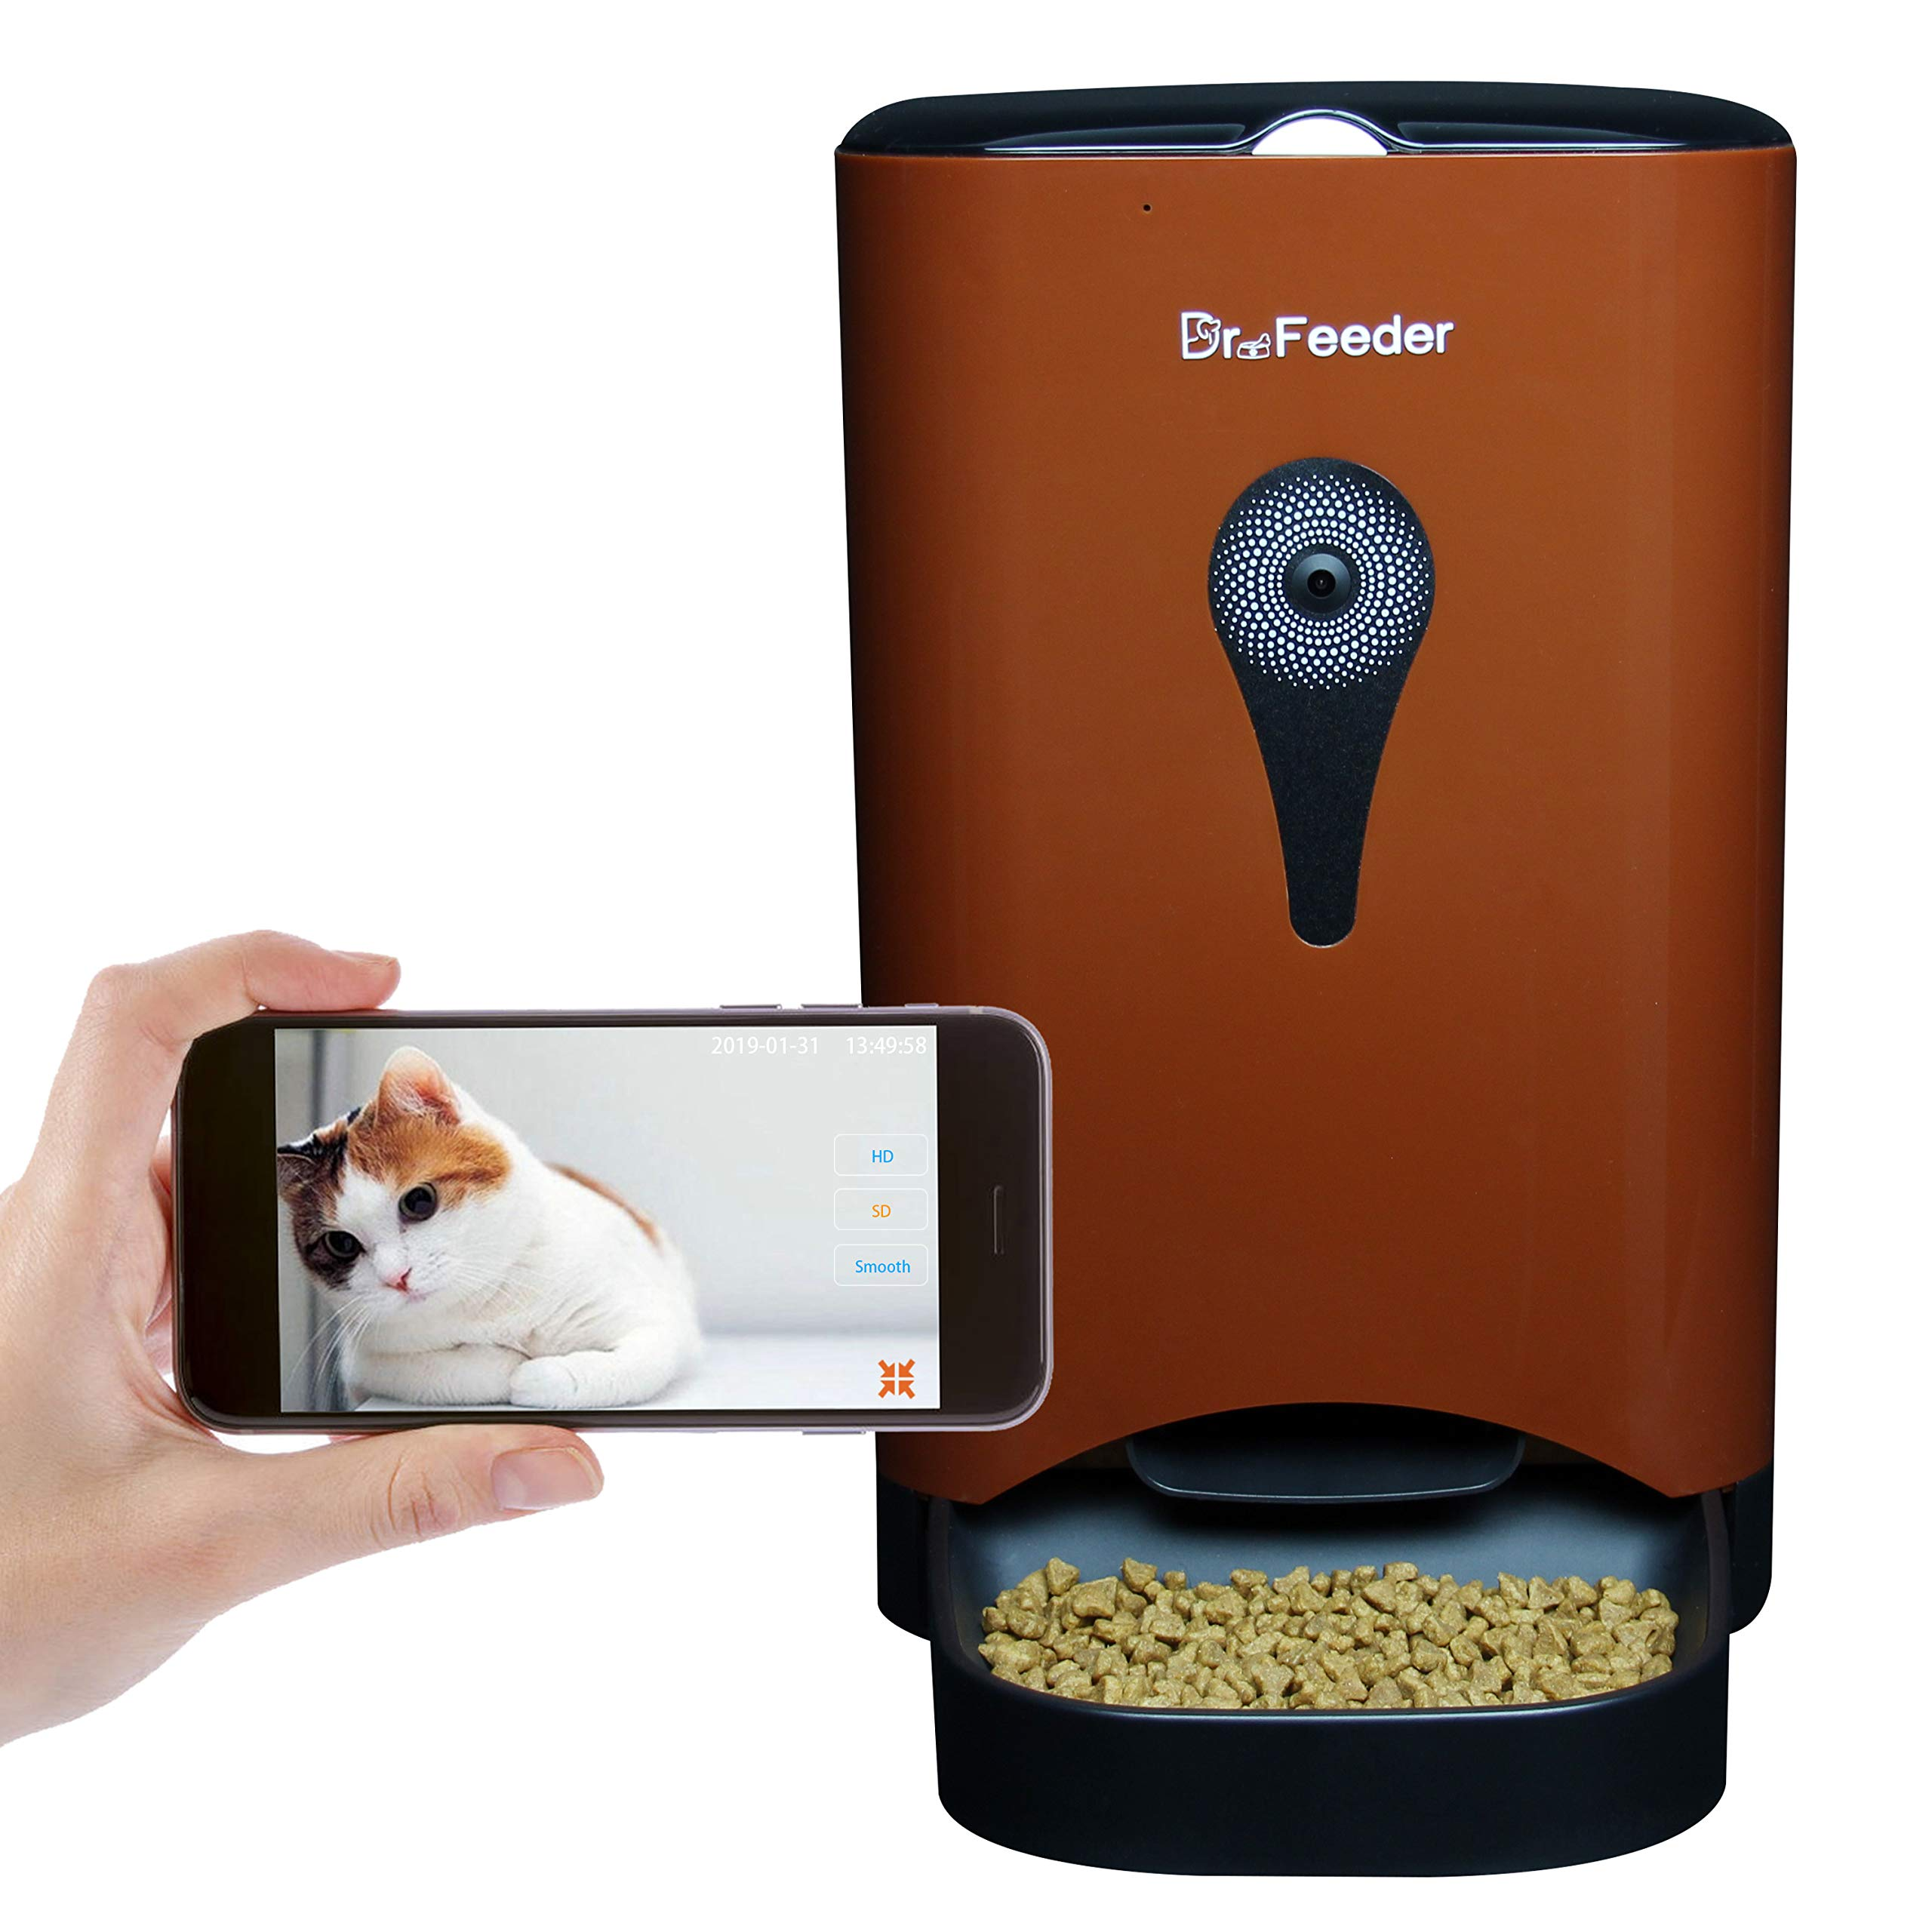 4.5L Smart HD Camera Feeder for Video and Audio Communication, Automatic Pet Feeder for Cats and Dogs, APP Controlled Food Dispenser Through Wi-Fi, Brown by Dr. Feeder